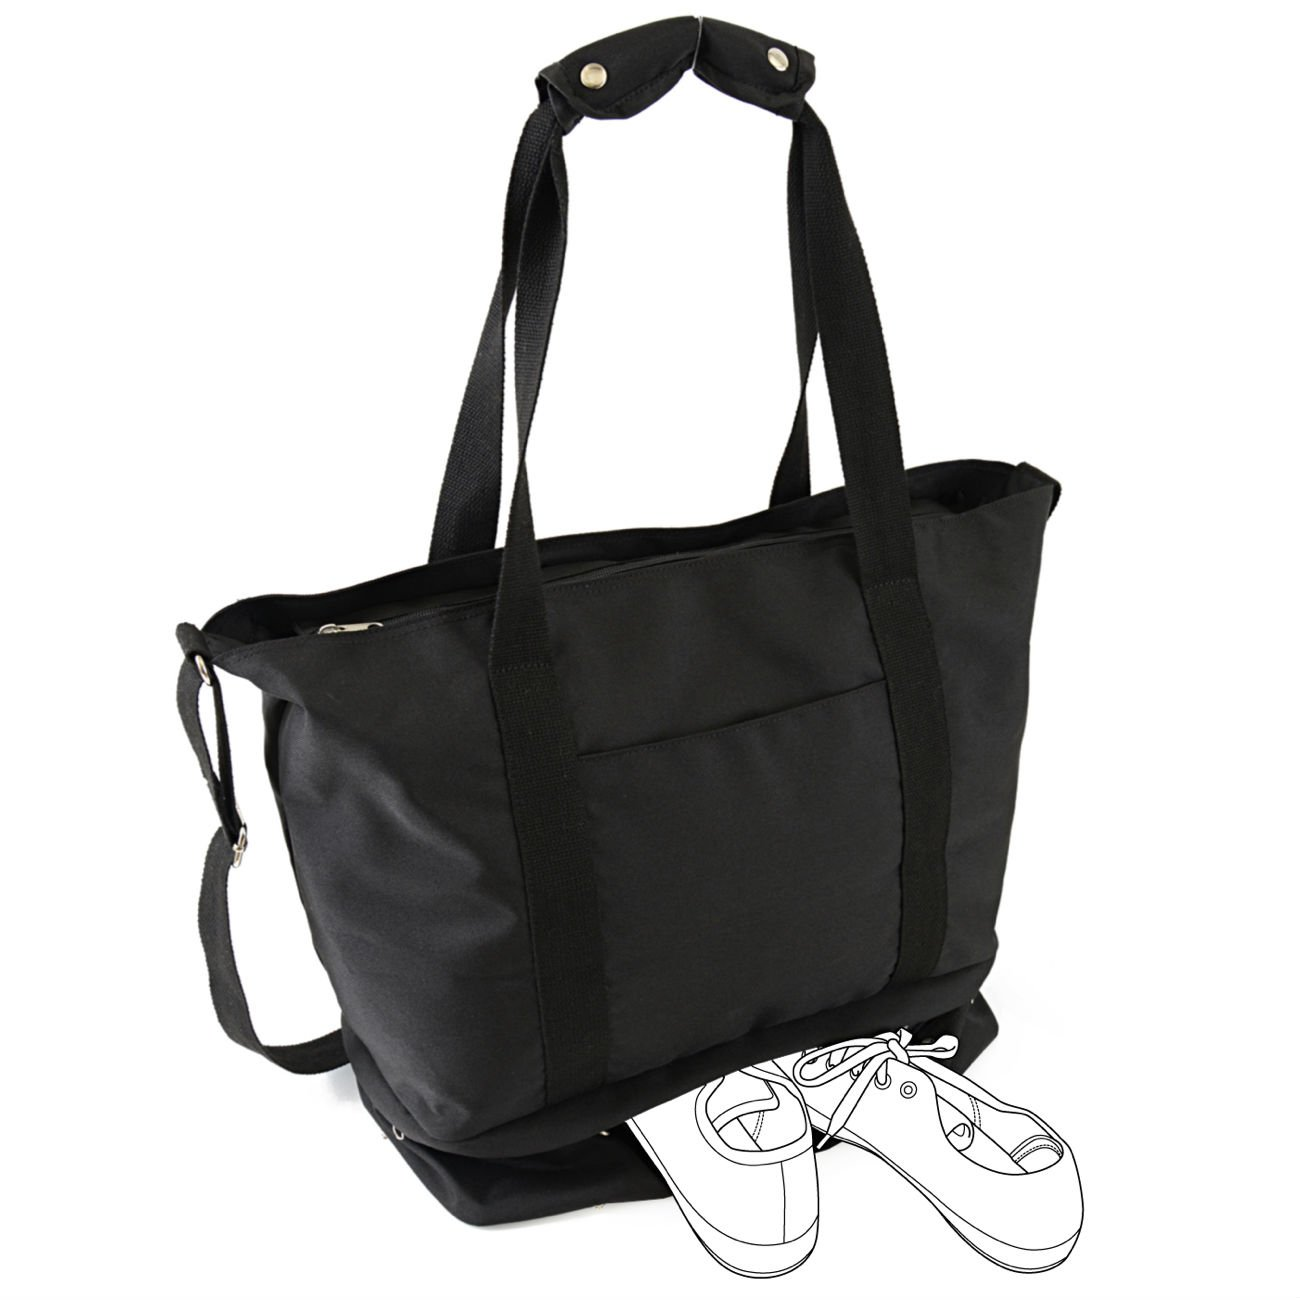 roseta 2Rooms, Gym Tote Bag with Shoe Compartment , Flight , Fitness(Large, Black)